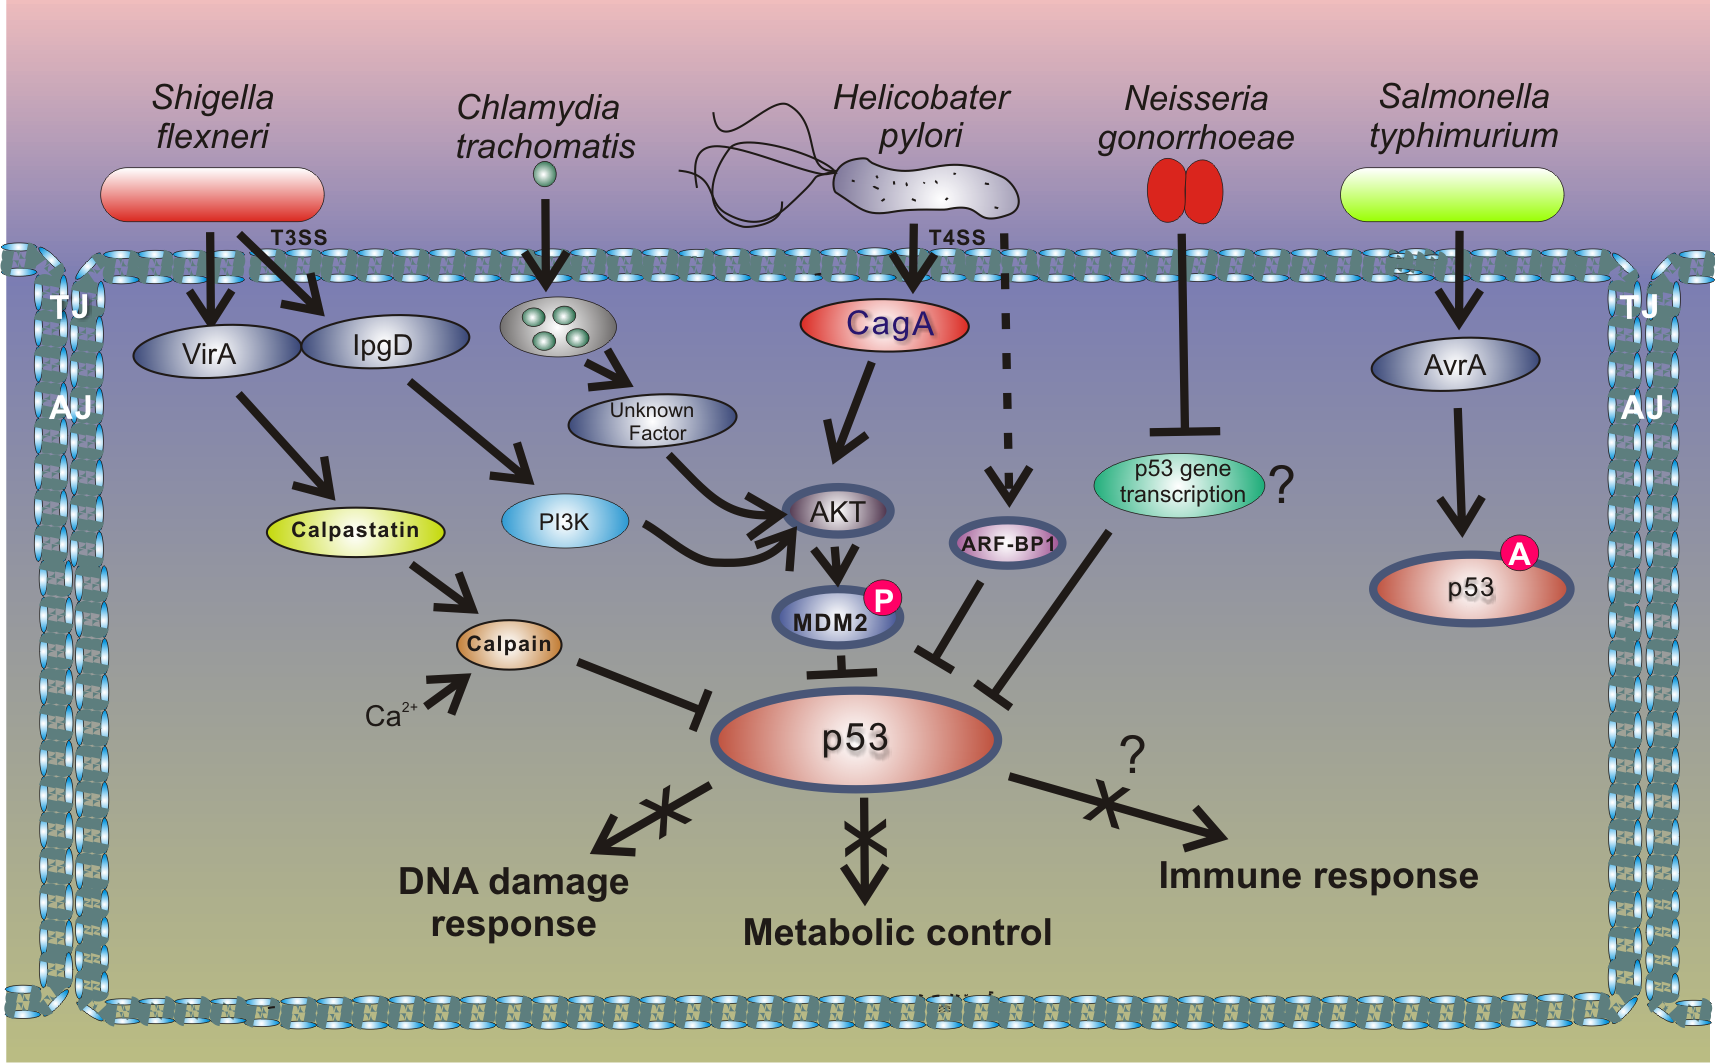 Outline of the interactions between bacterial pathogens and the p53 pathway.